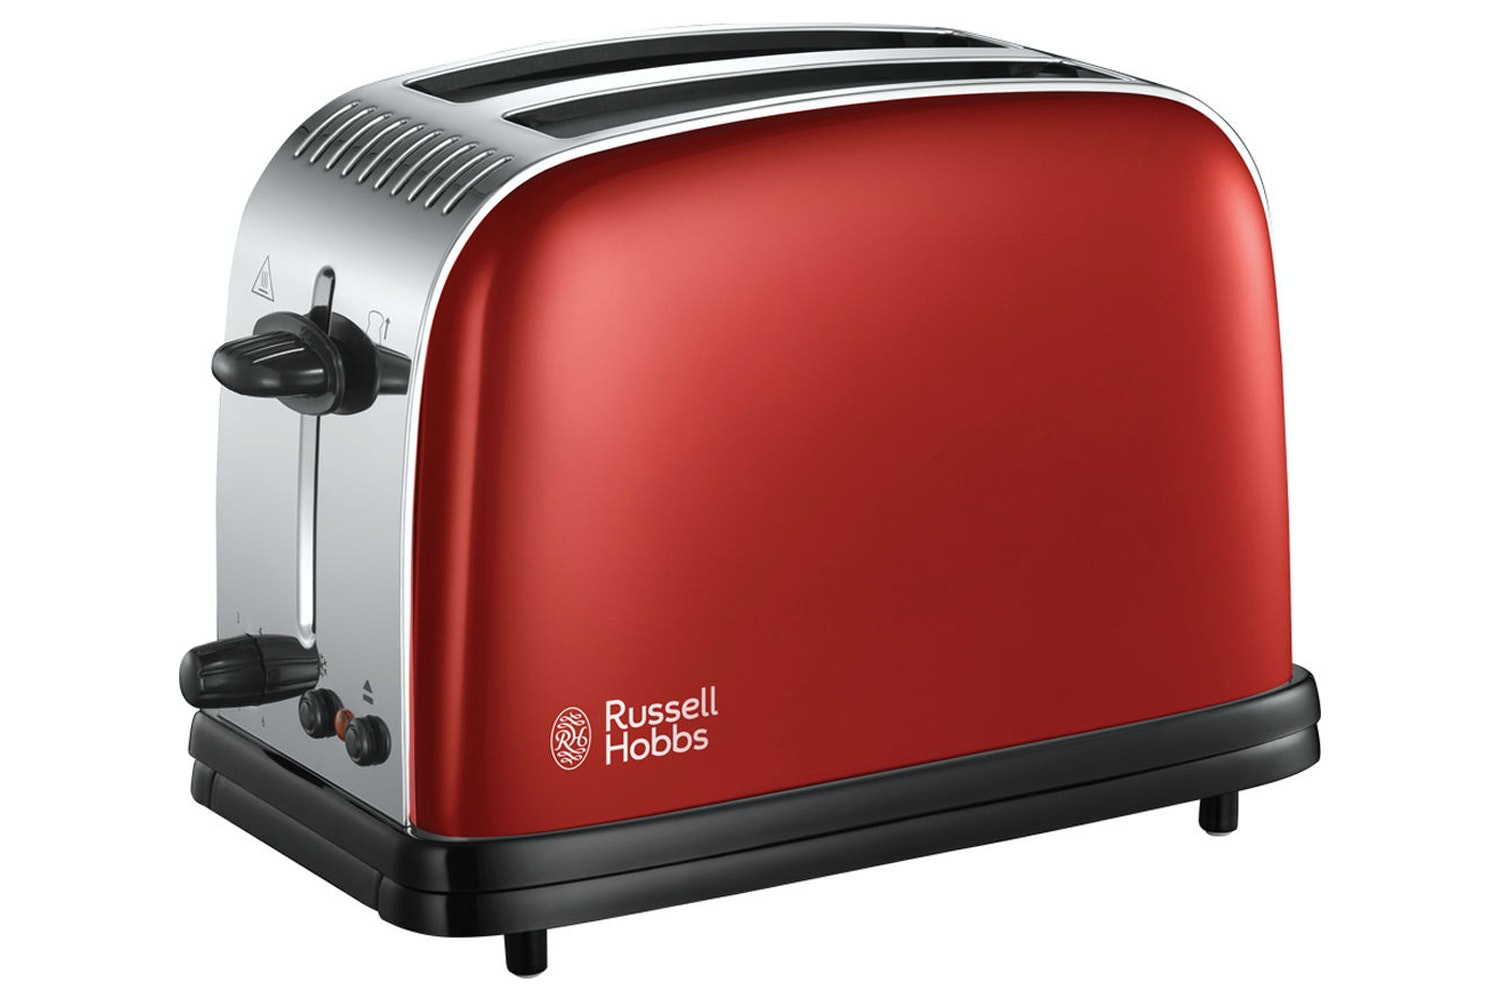 Russell Hobbs 2 Slice Toaster | Red